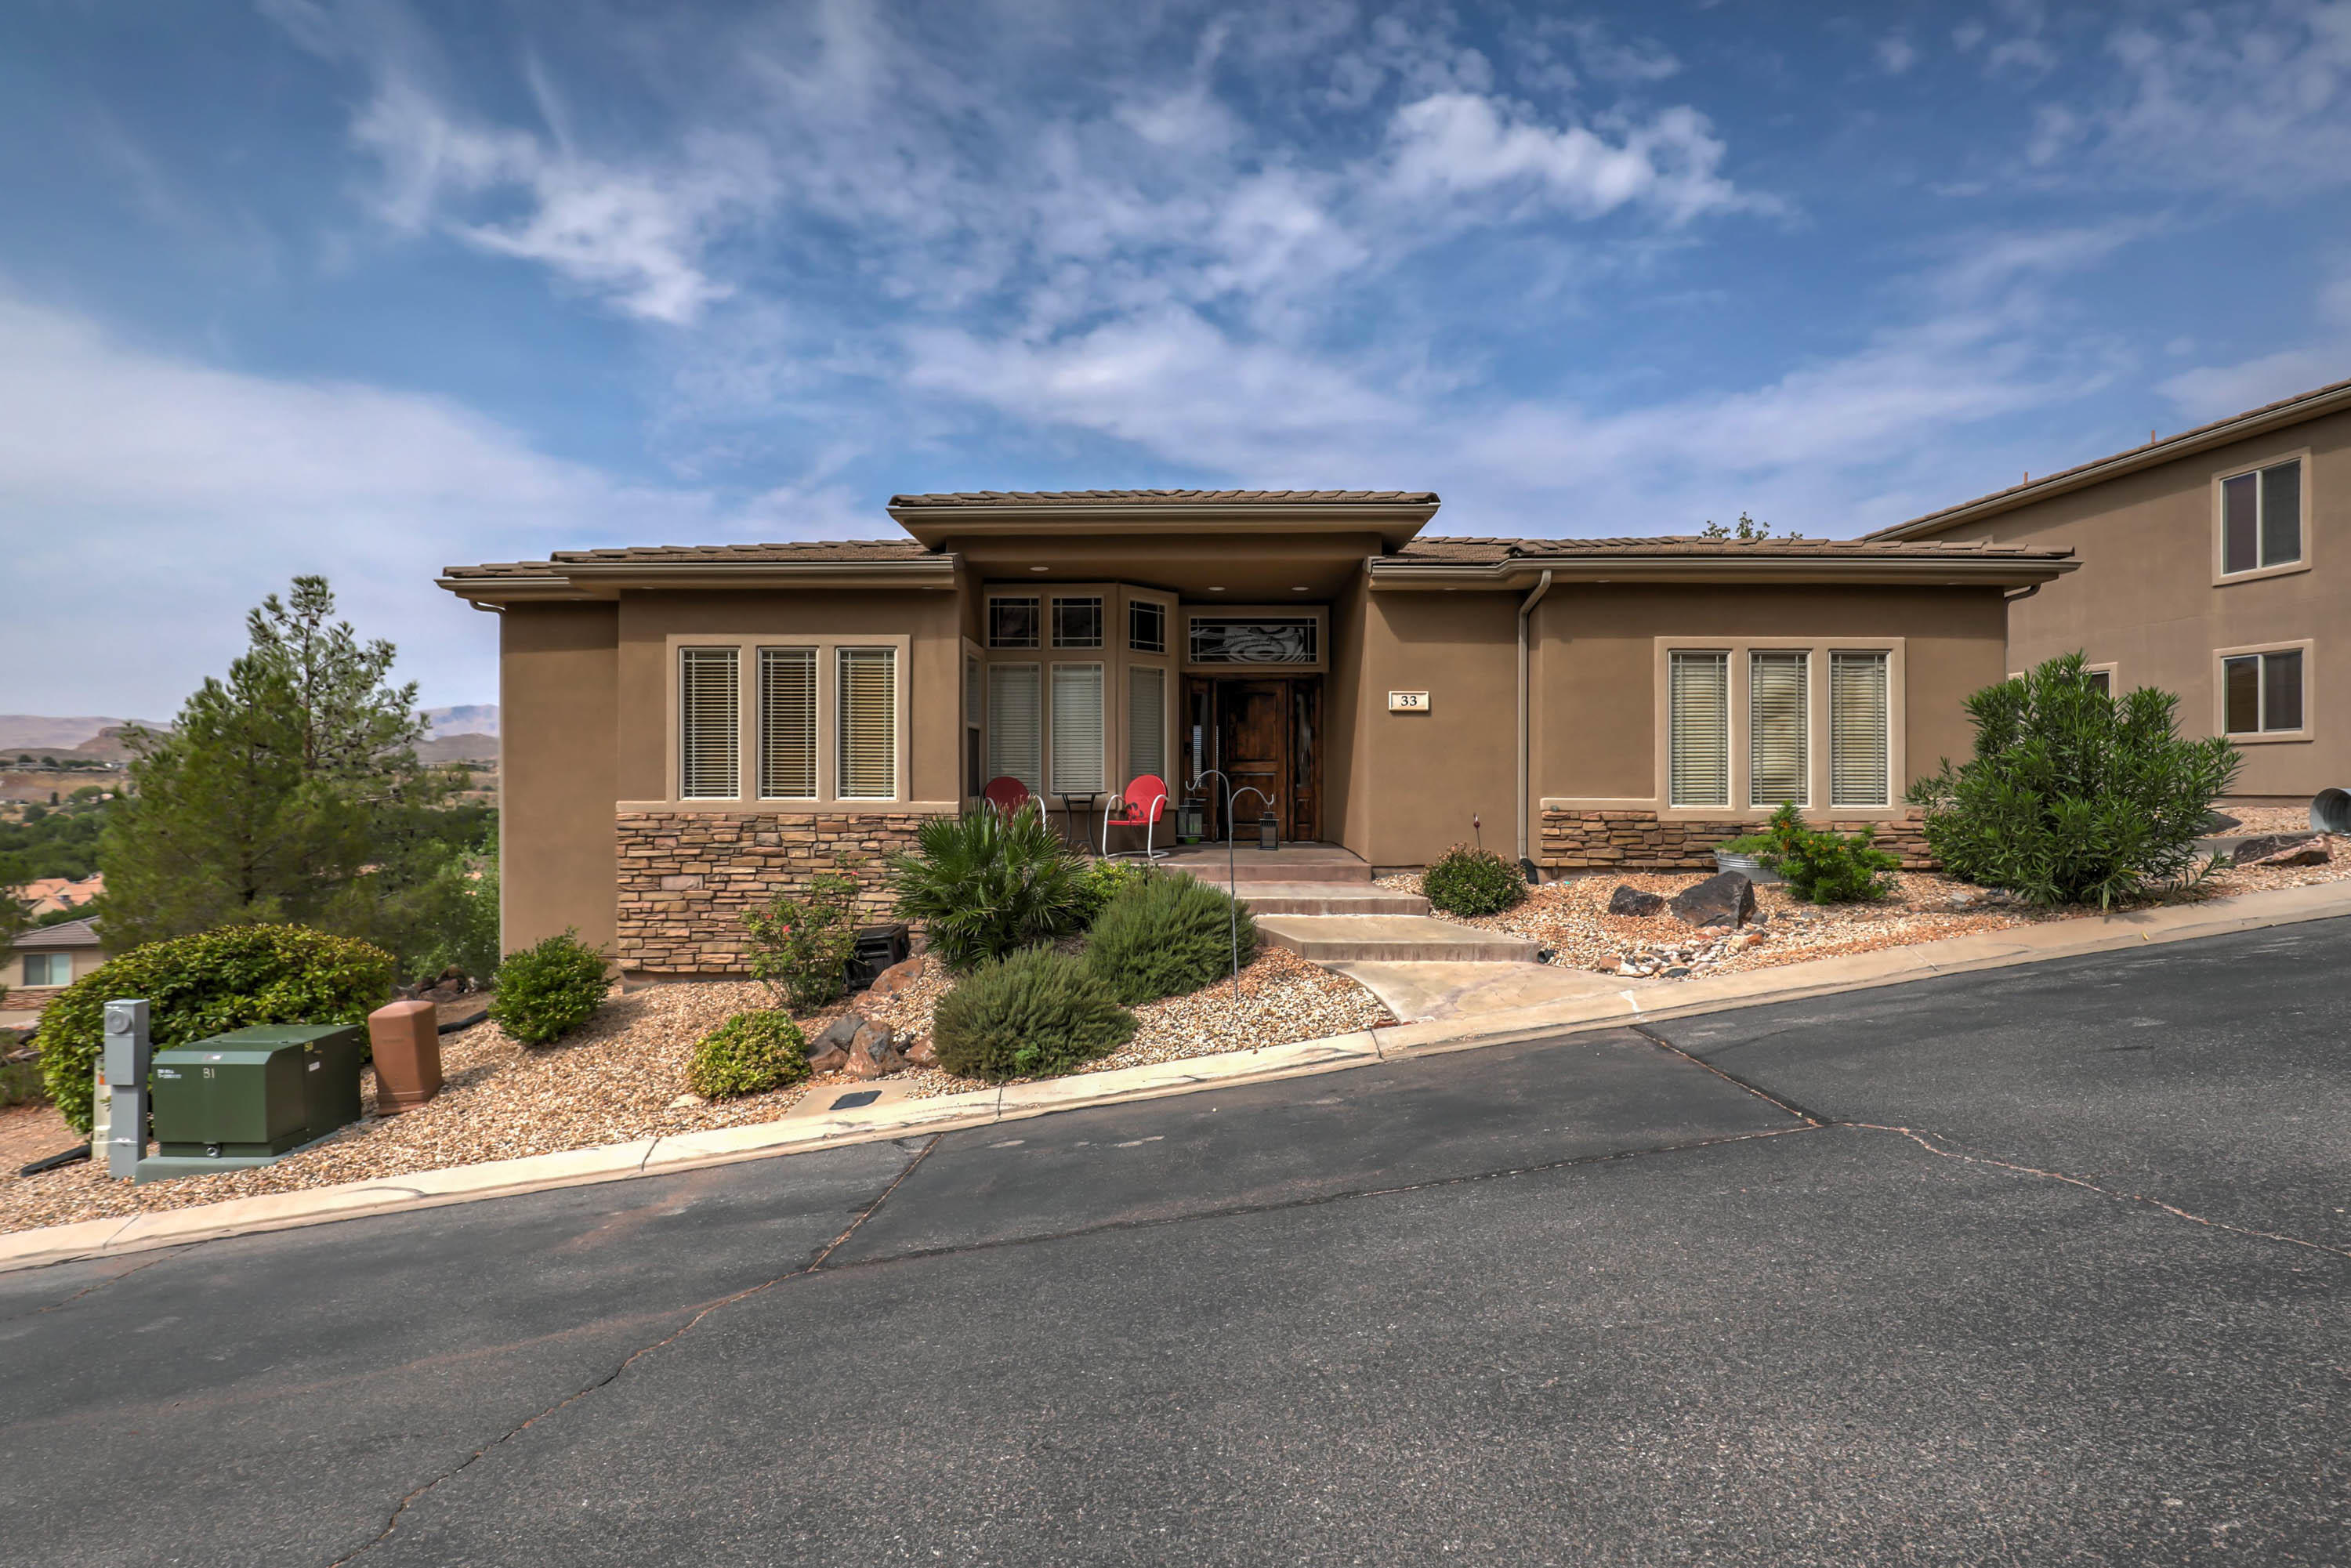 1210 W Indian Hills Unit 33, St George Ut 84770